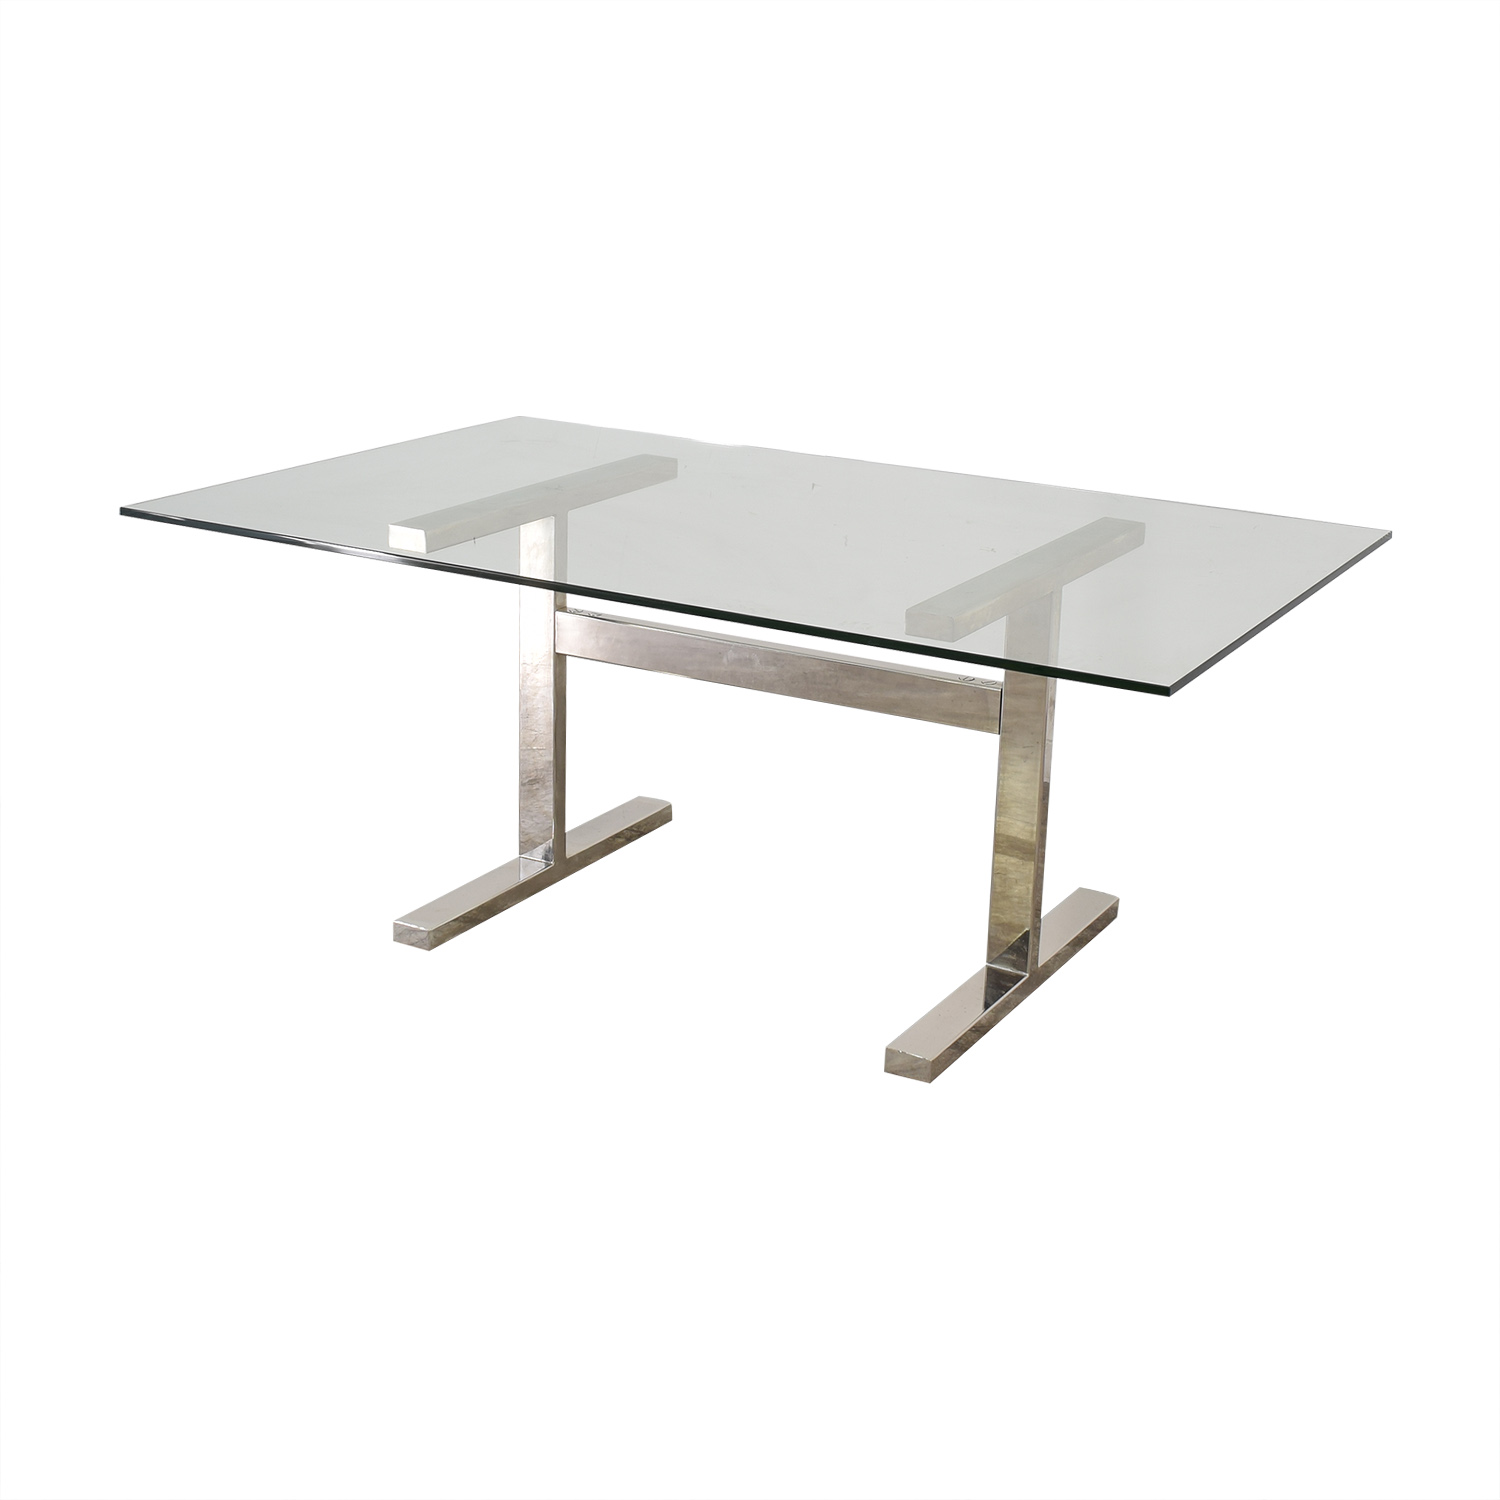 Williams Sonoma Williams Sonoma Mercer Glass Top Dining Table coupon